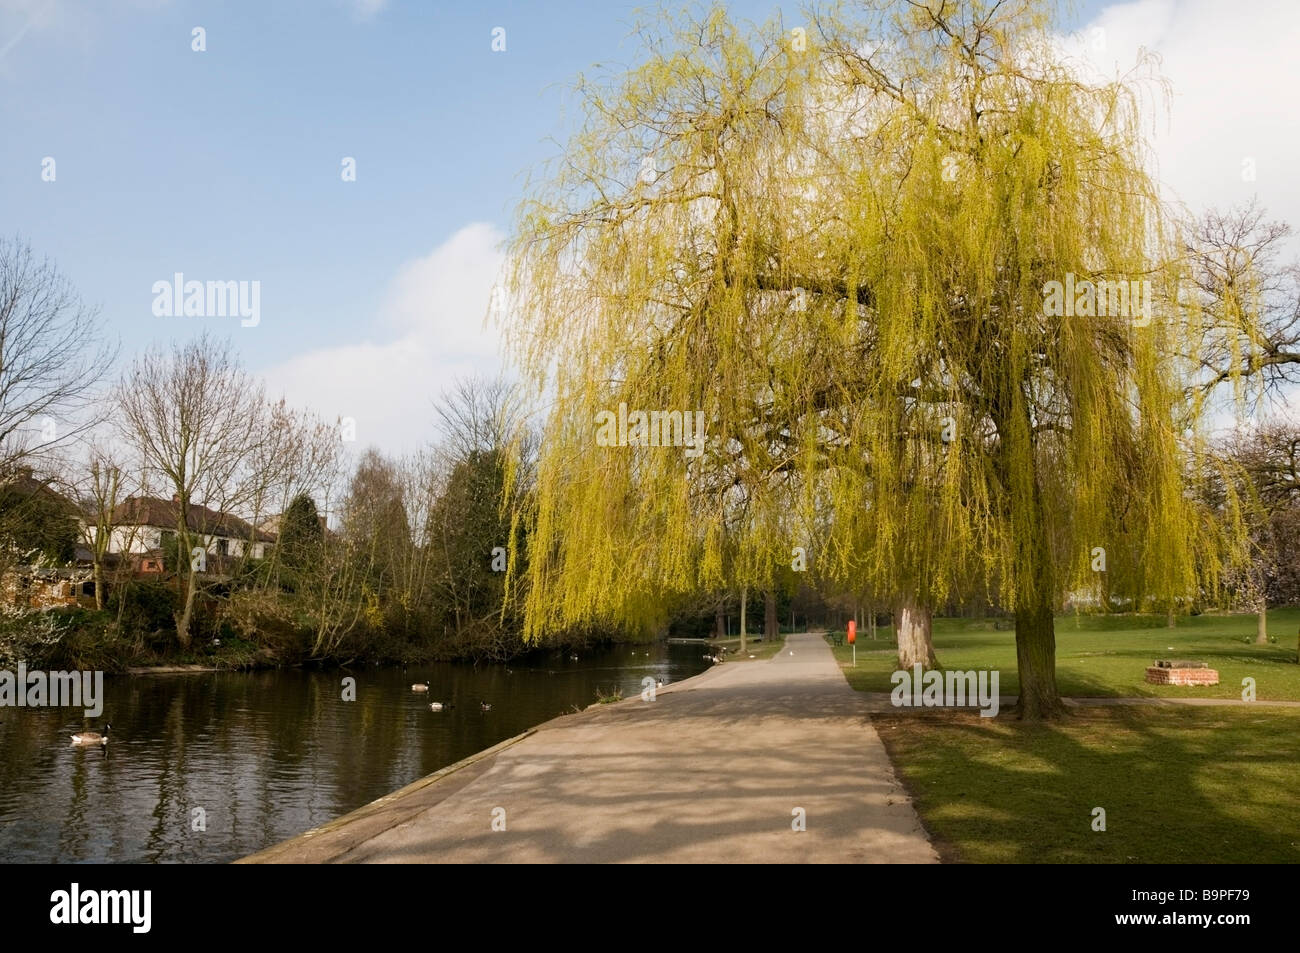 Weeping Willow Tree And Water Stock Photos Weeping Willow Tree And Water Stock Images Alamy